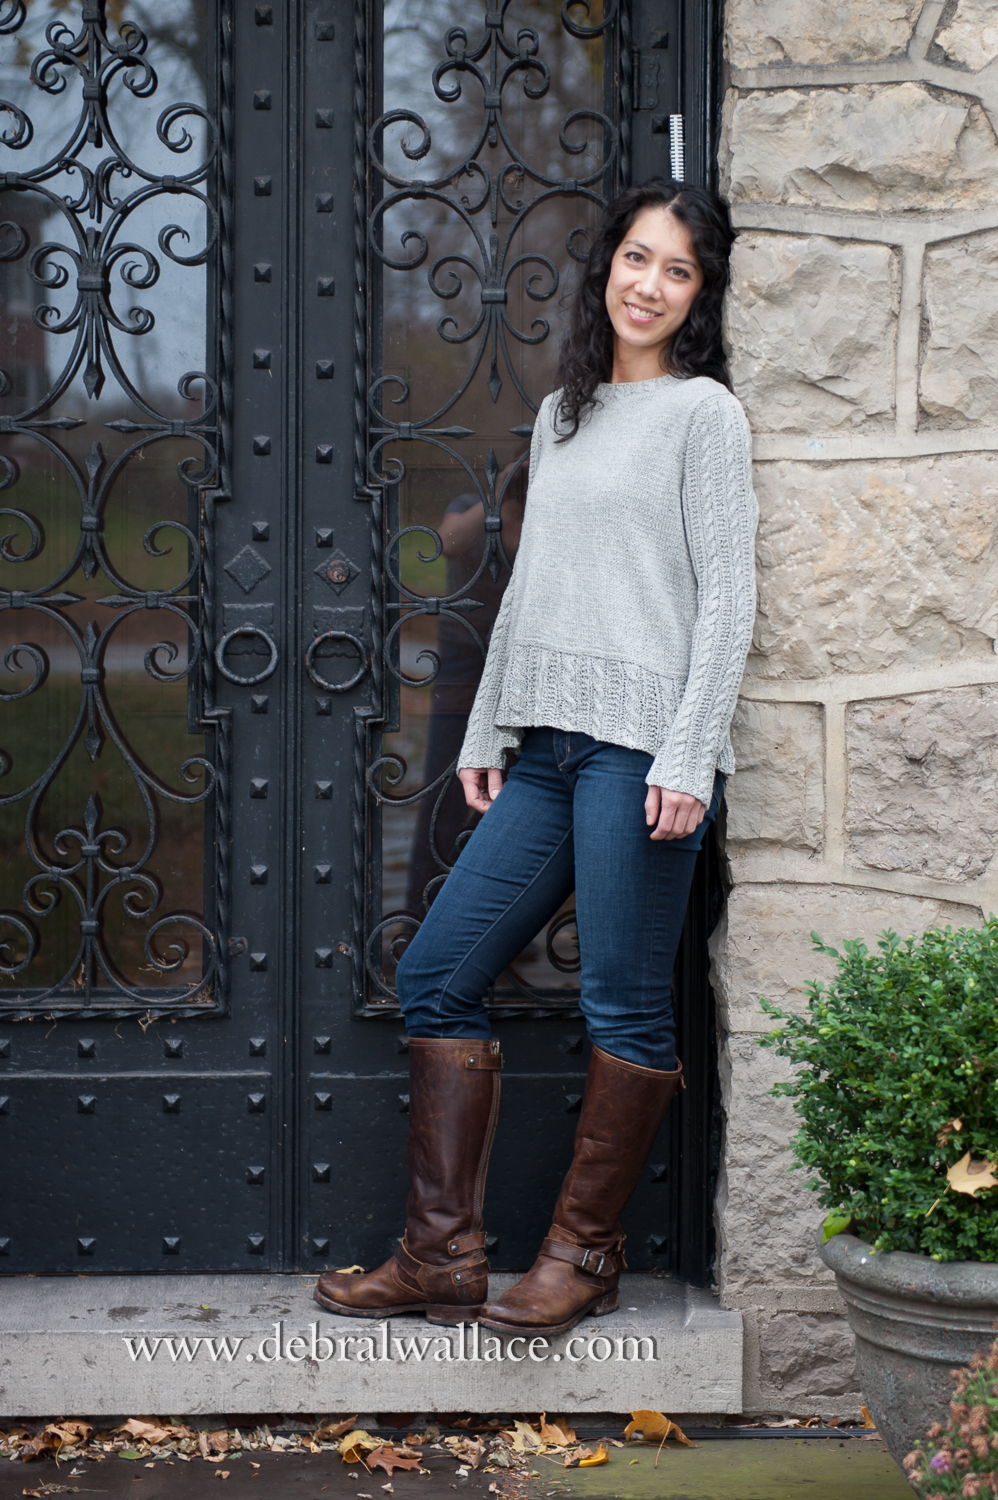 clothing fashion knitting pattern photography rochester ny-2496